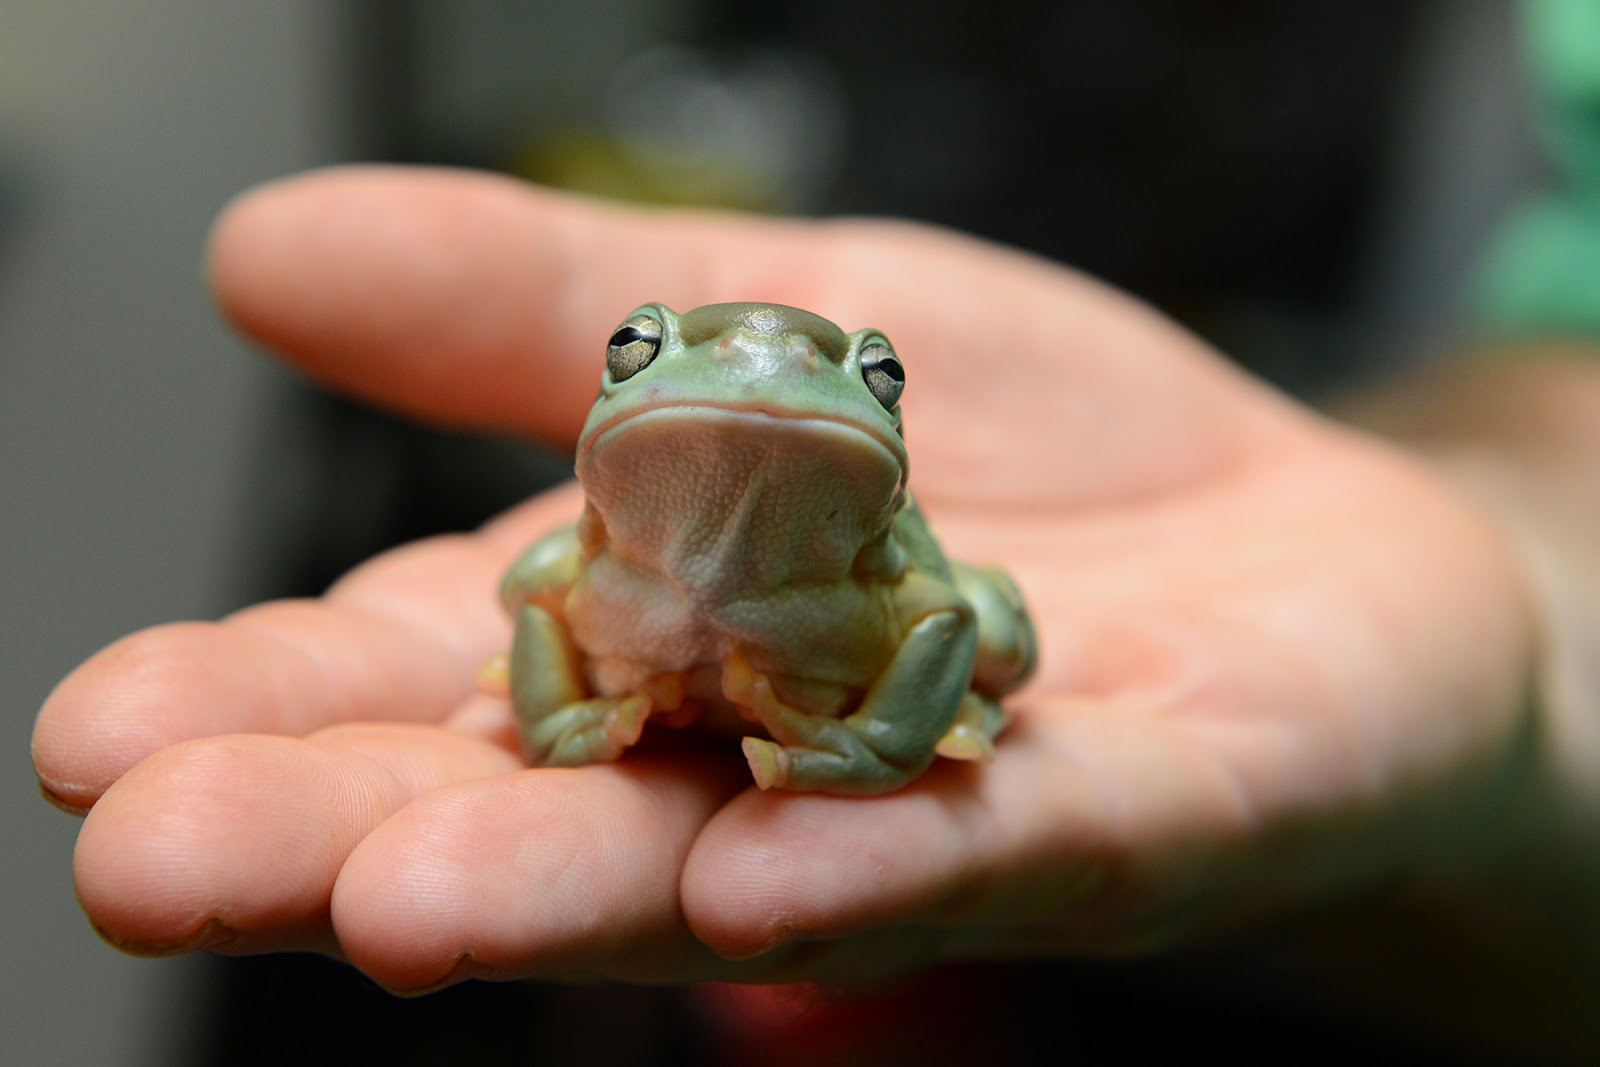 Magnificent Tree Frog/Splendid Tree Frog